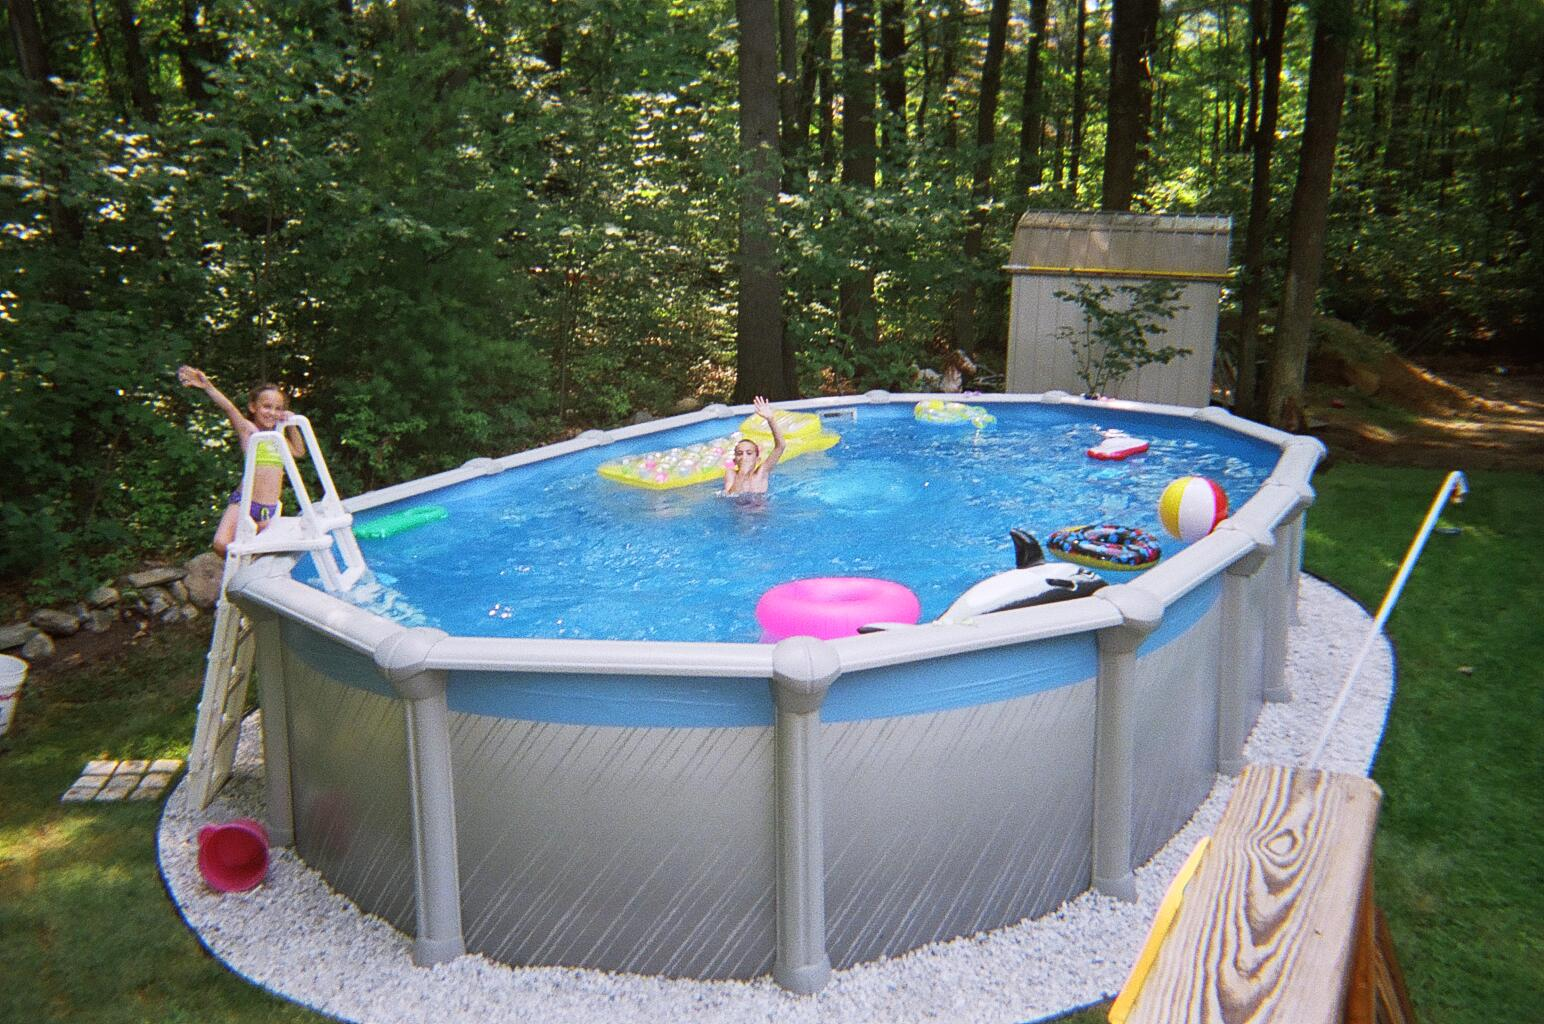 Intex Pool Fence